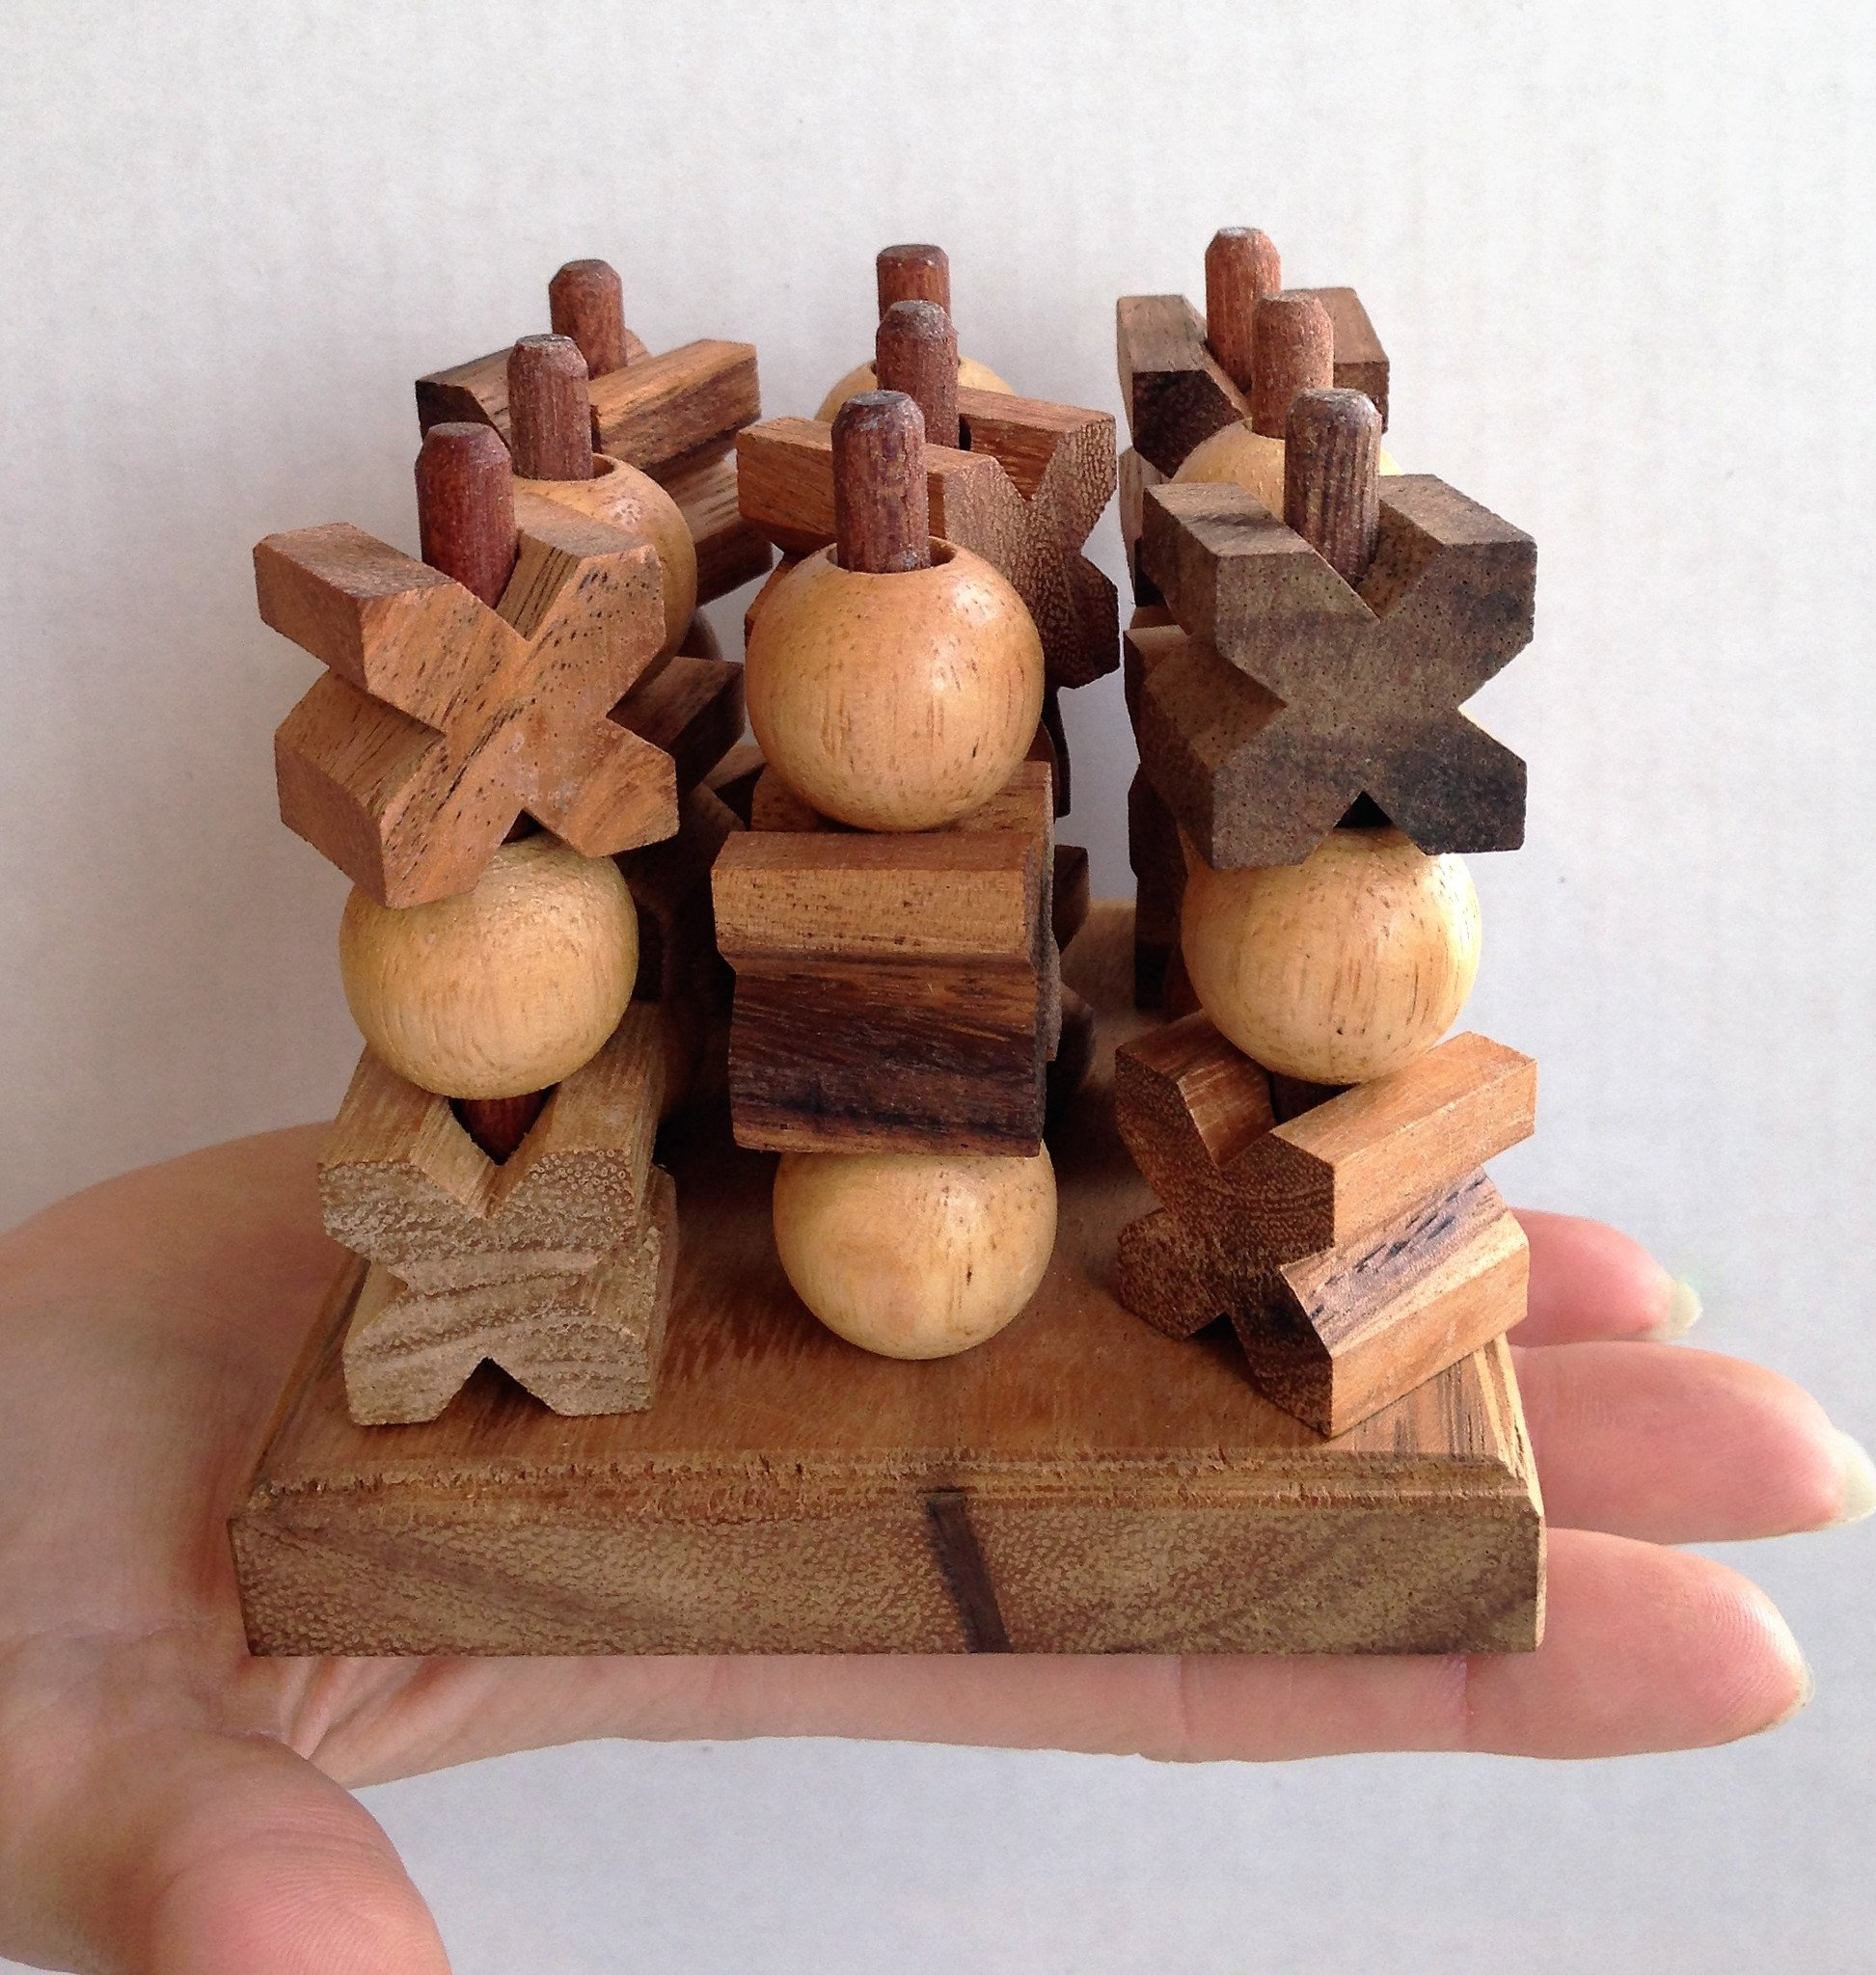 3D Tic Tac Toe (Small) - Strategy Wooden Game - Solve It! Think Out ...